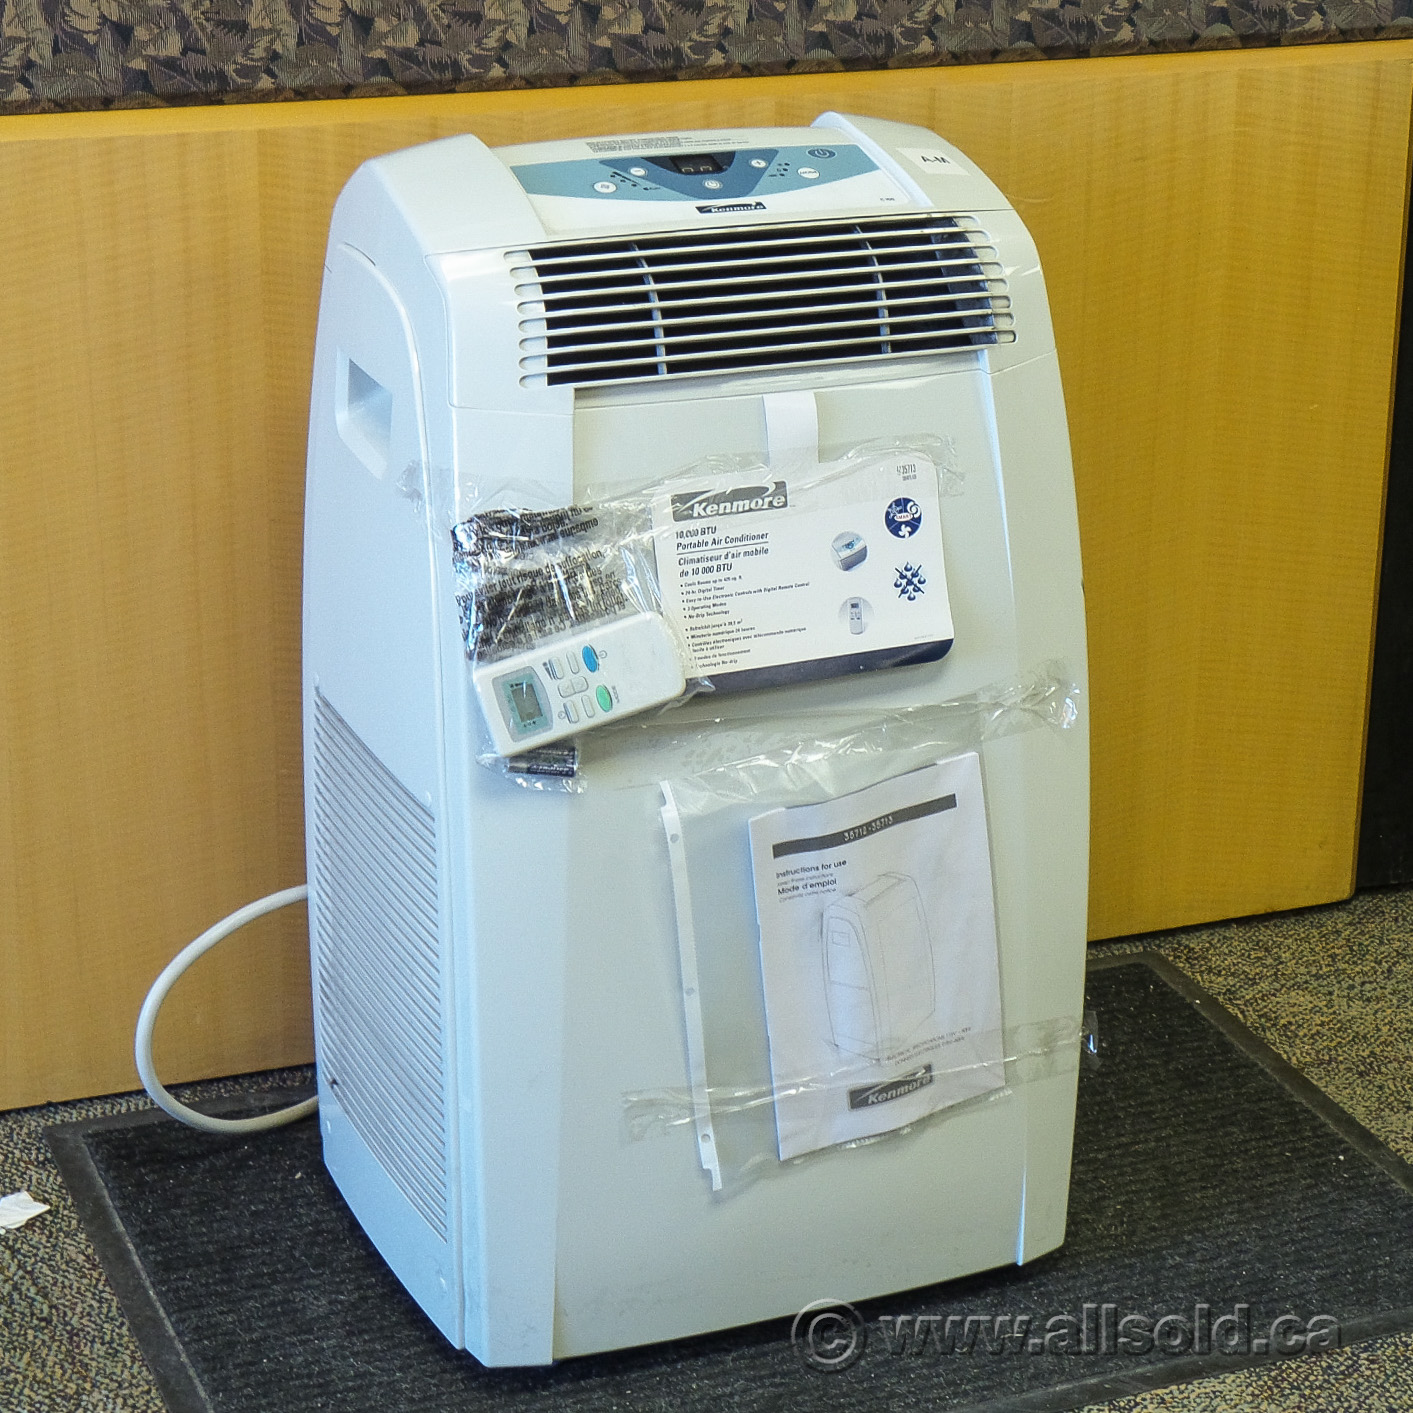 #95782B Kenmore C100 Portable 10 000 BTU A/C Air Conditioner  Brand New 10371 Air Conditioner Kenmore images with 1413x1413 px on helpvideos.info - Air Conditioners, Air Coolers and more